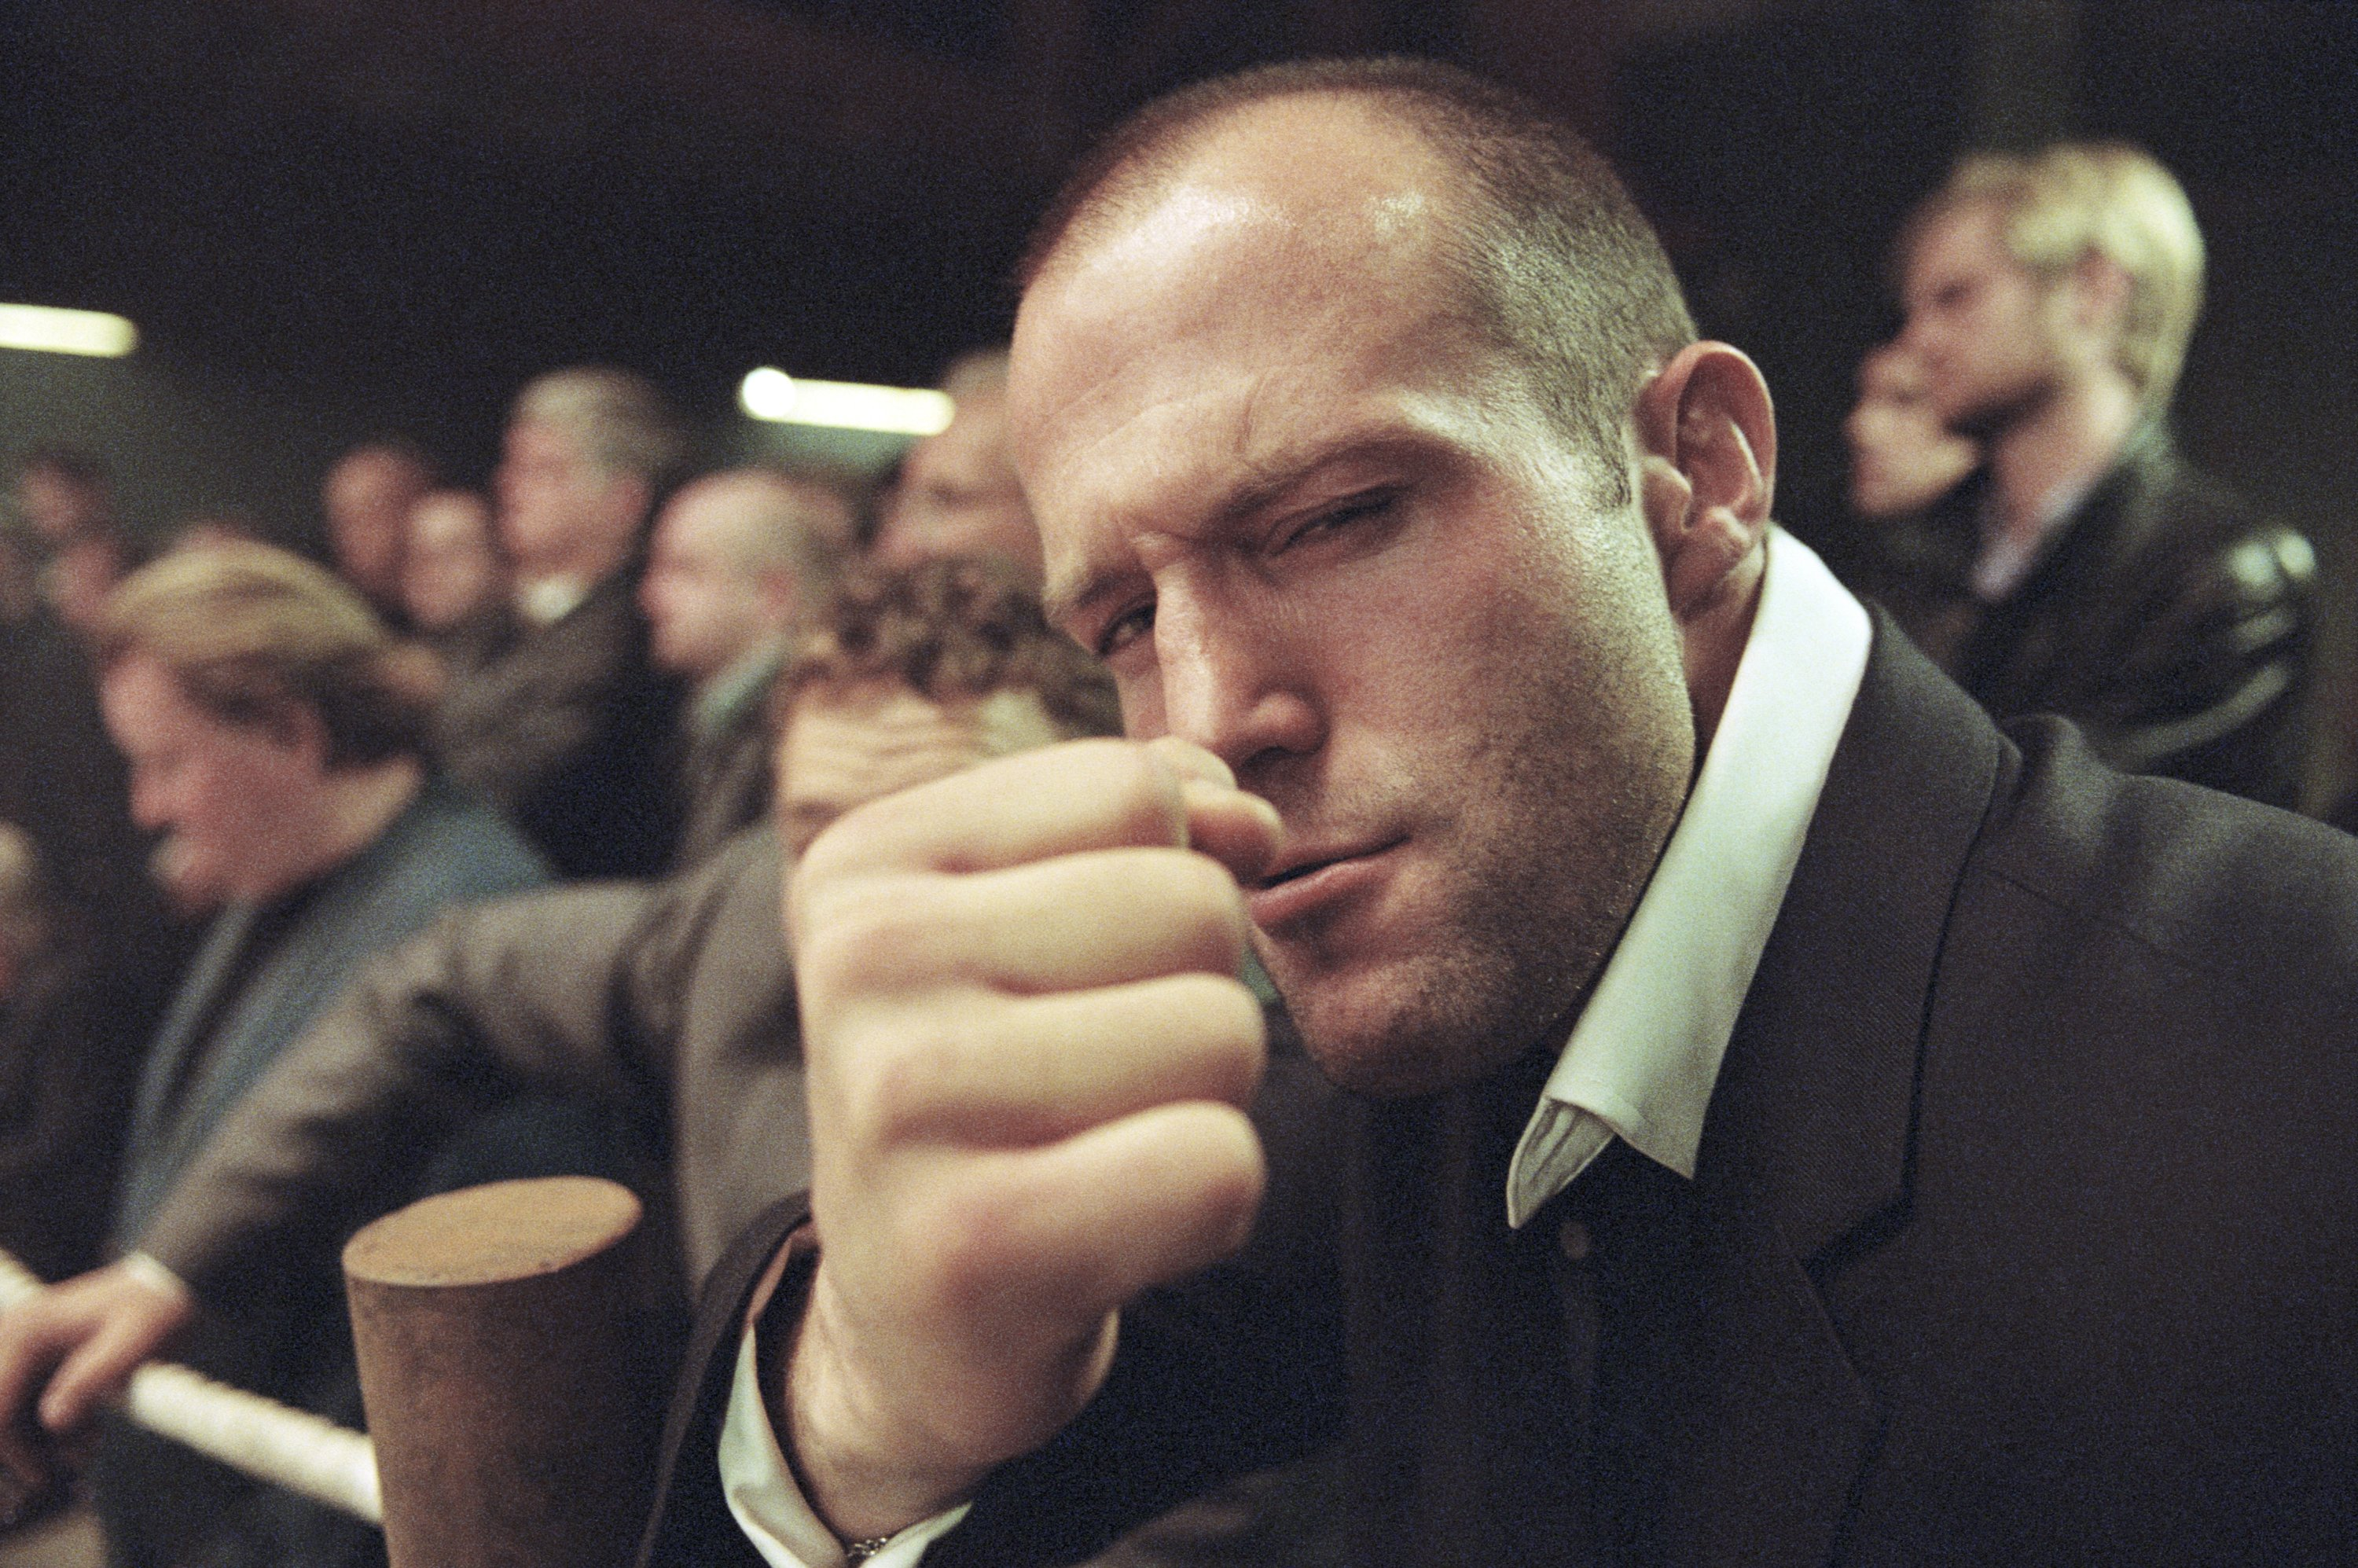 Actor Jason Statham poses on location during the filming of Guy Ritchie's second film 'Snatch,' London, England, Sept. 1, 2000. (Getty Images)